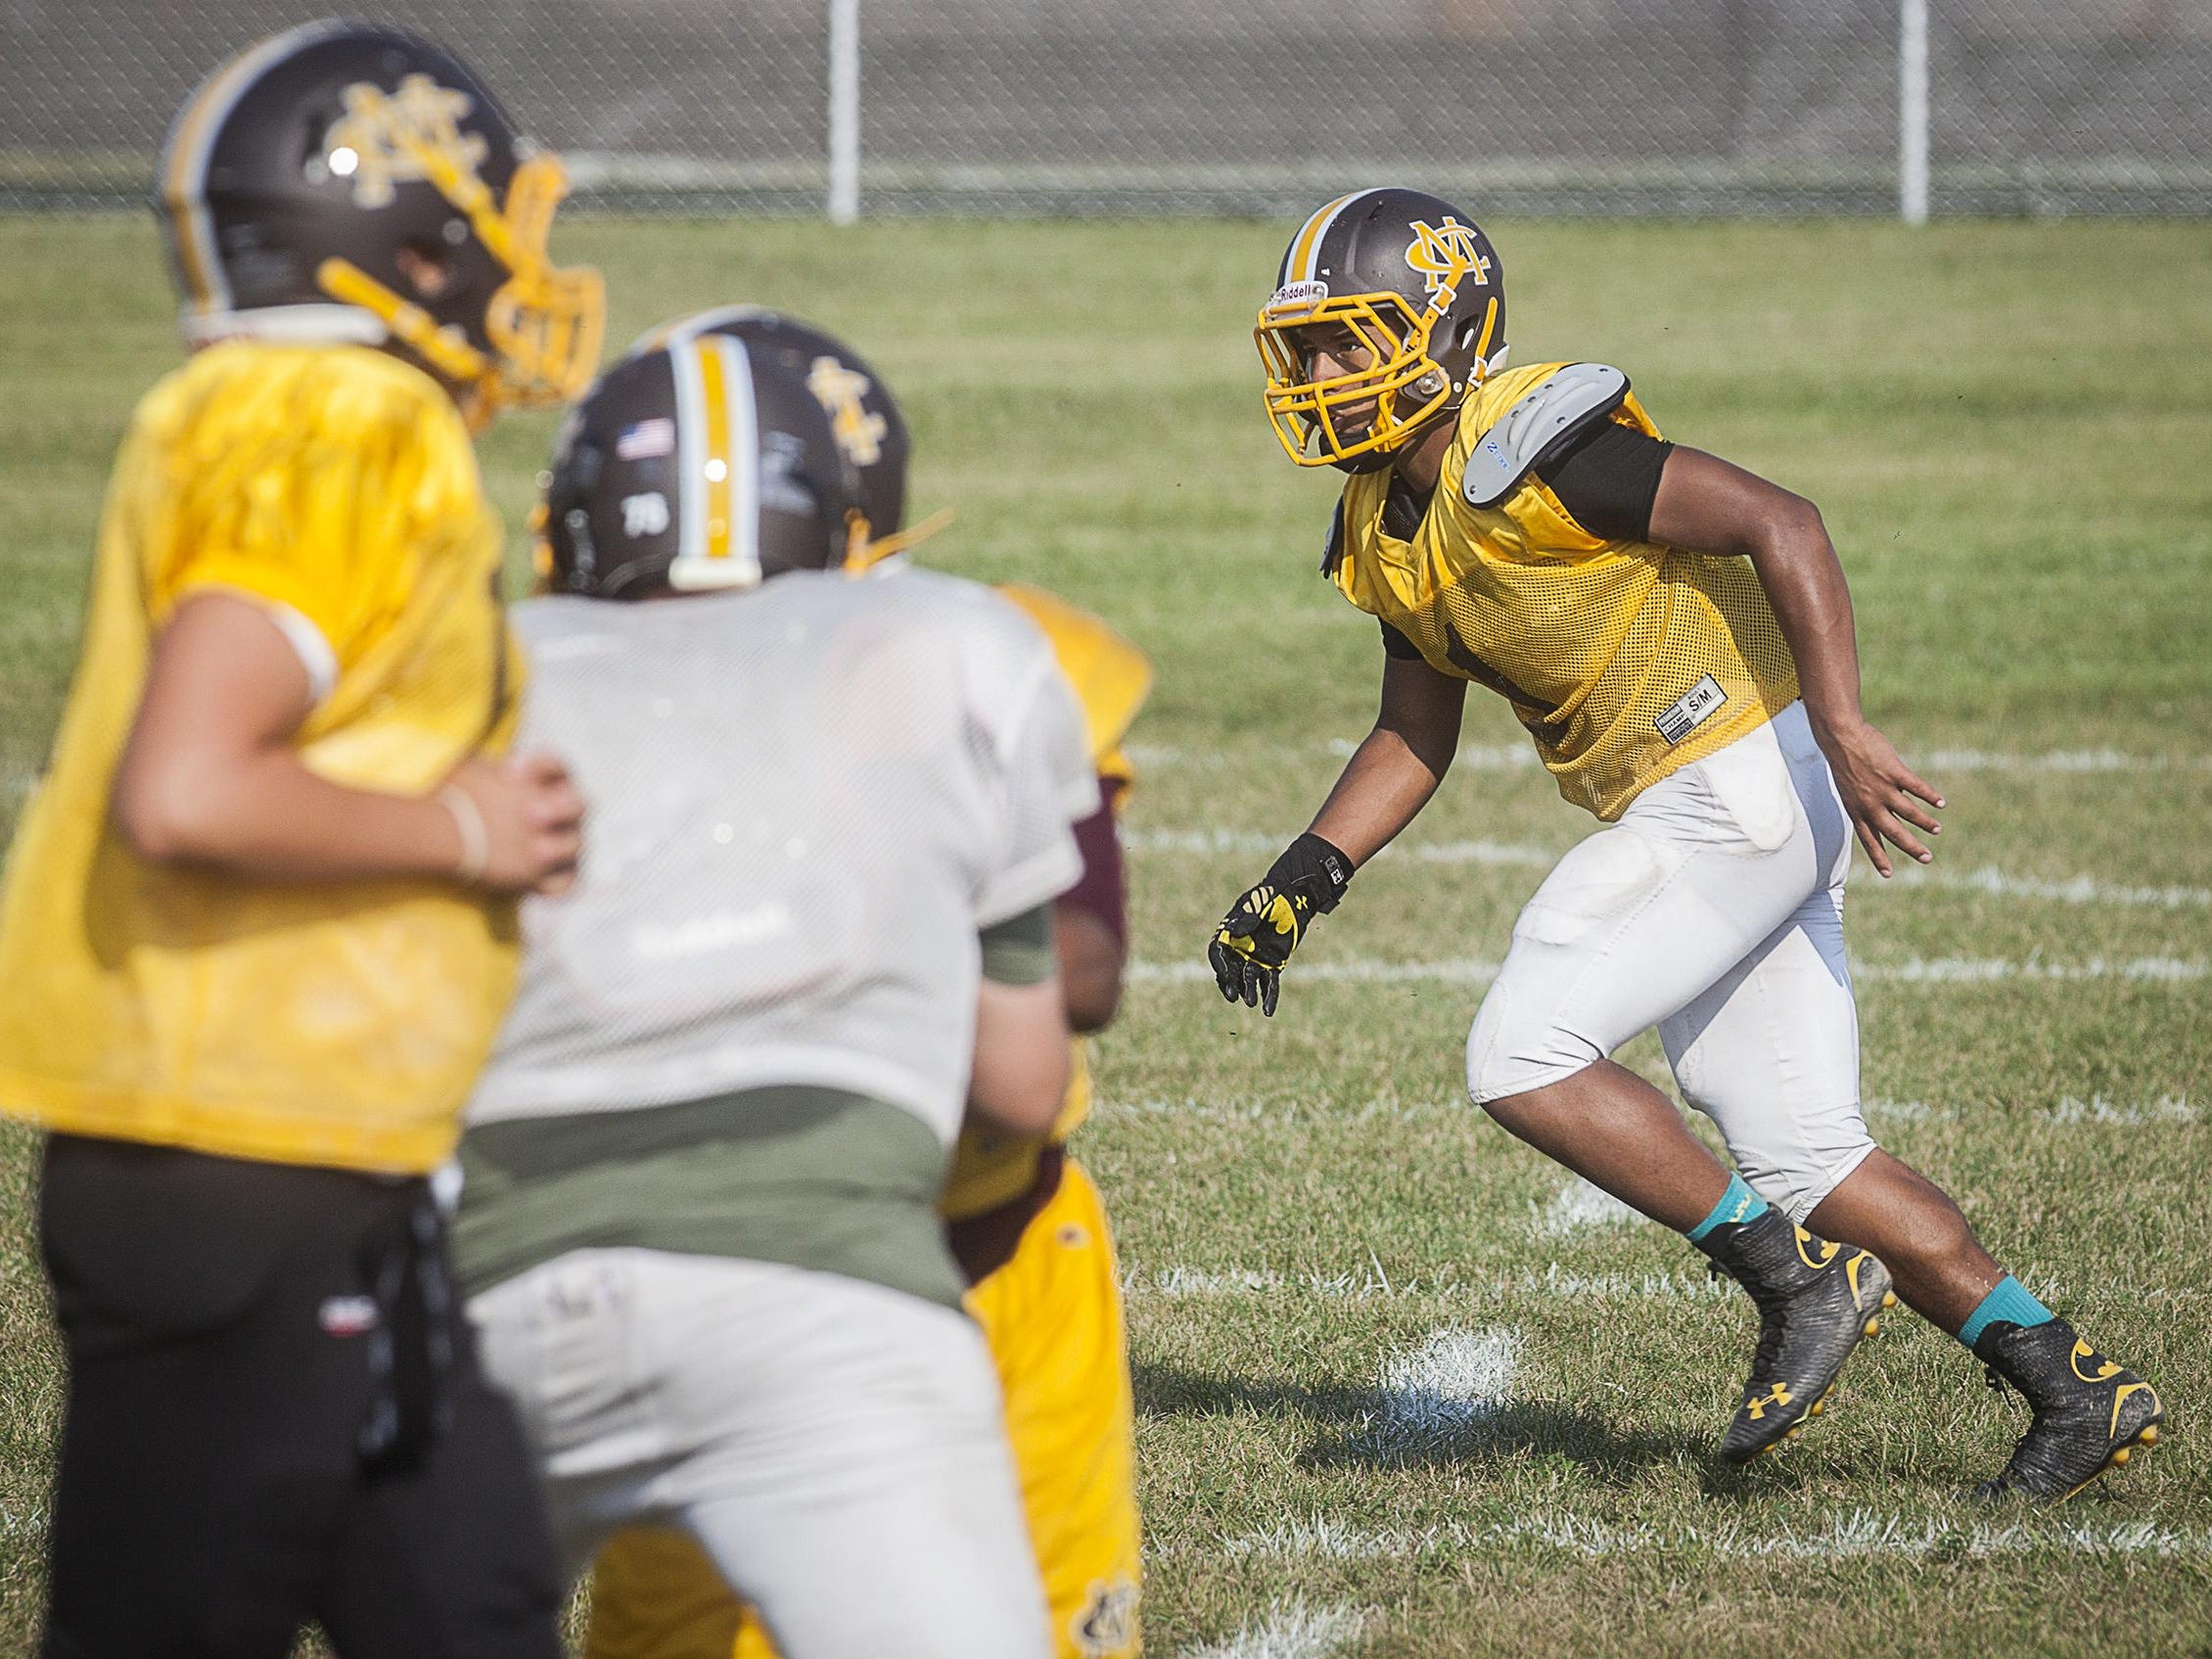 Monroe Central's Tyler Writtenhouse practices with teammates at Monroe Central High School Tuesday.